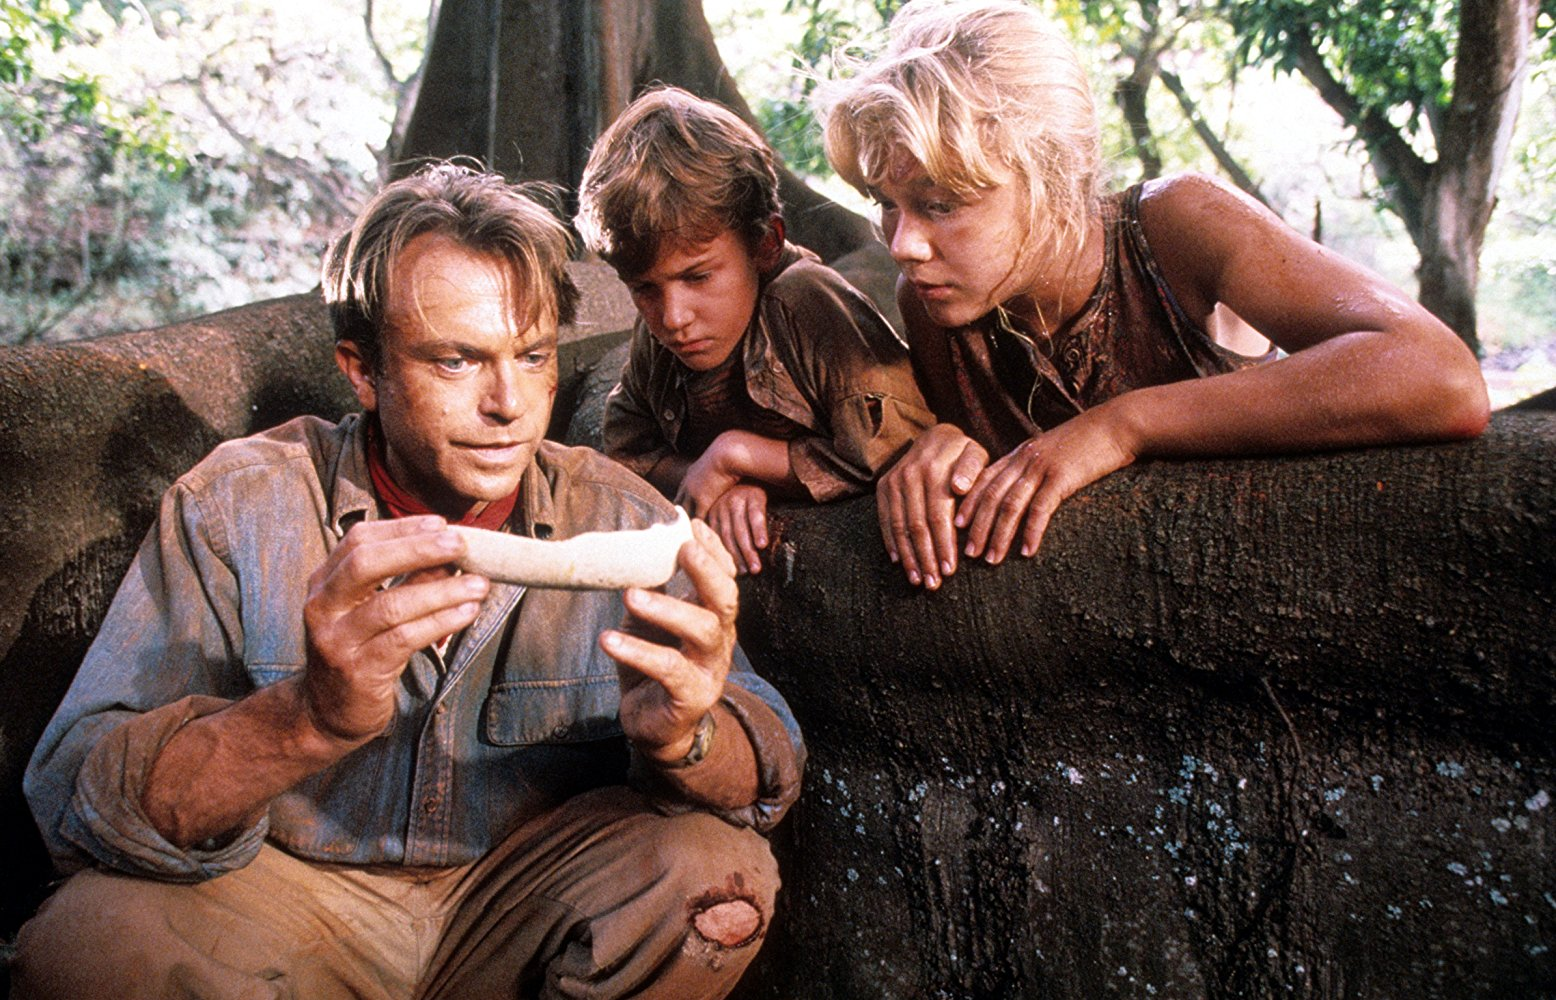 Sam Neill, Joseph Mazzello, and Ariana Richards look at a dinosaur bone in JURASSIC PARK (1993)